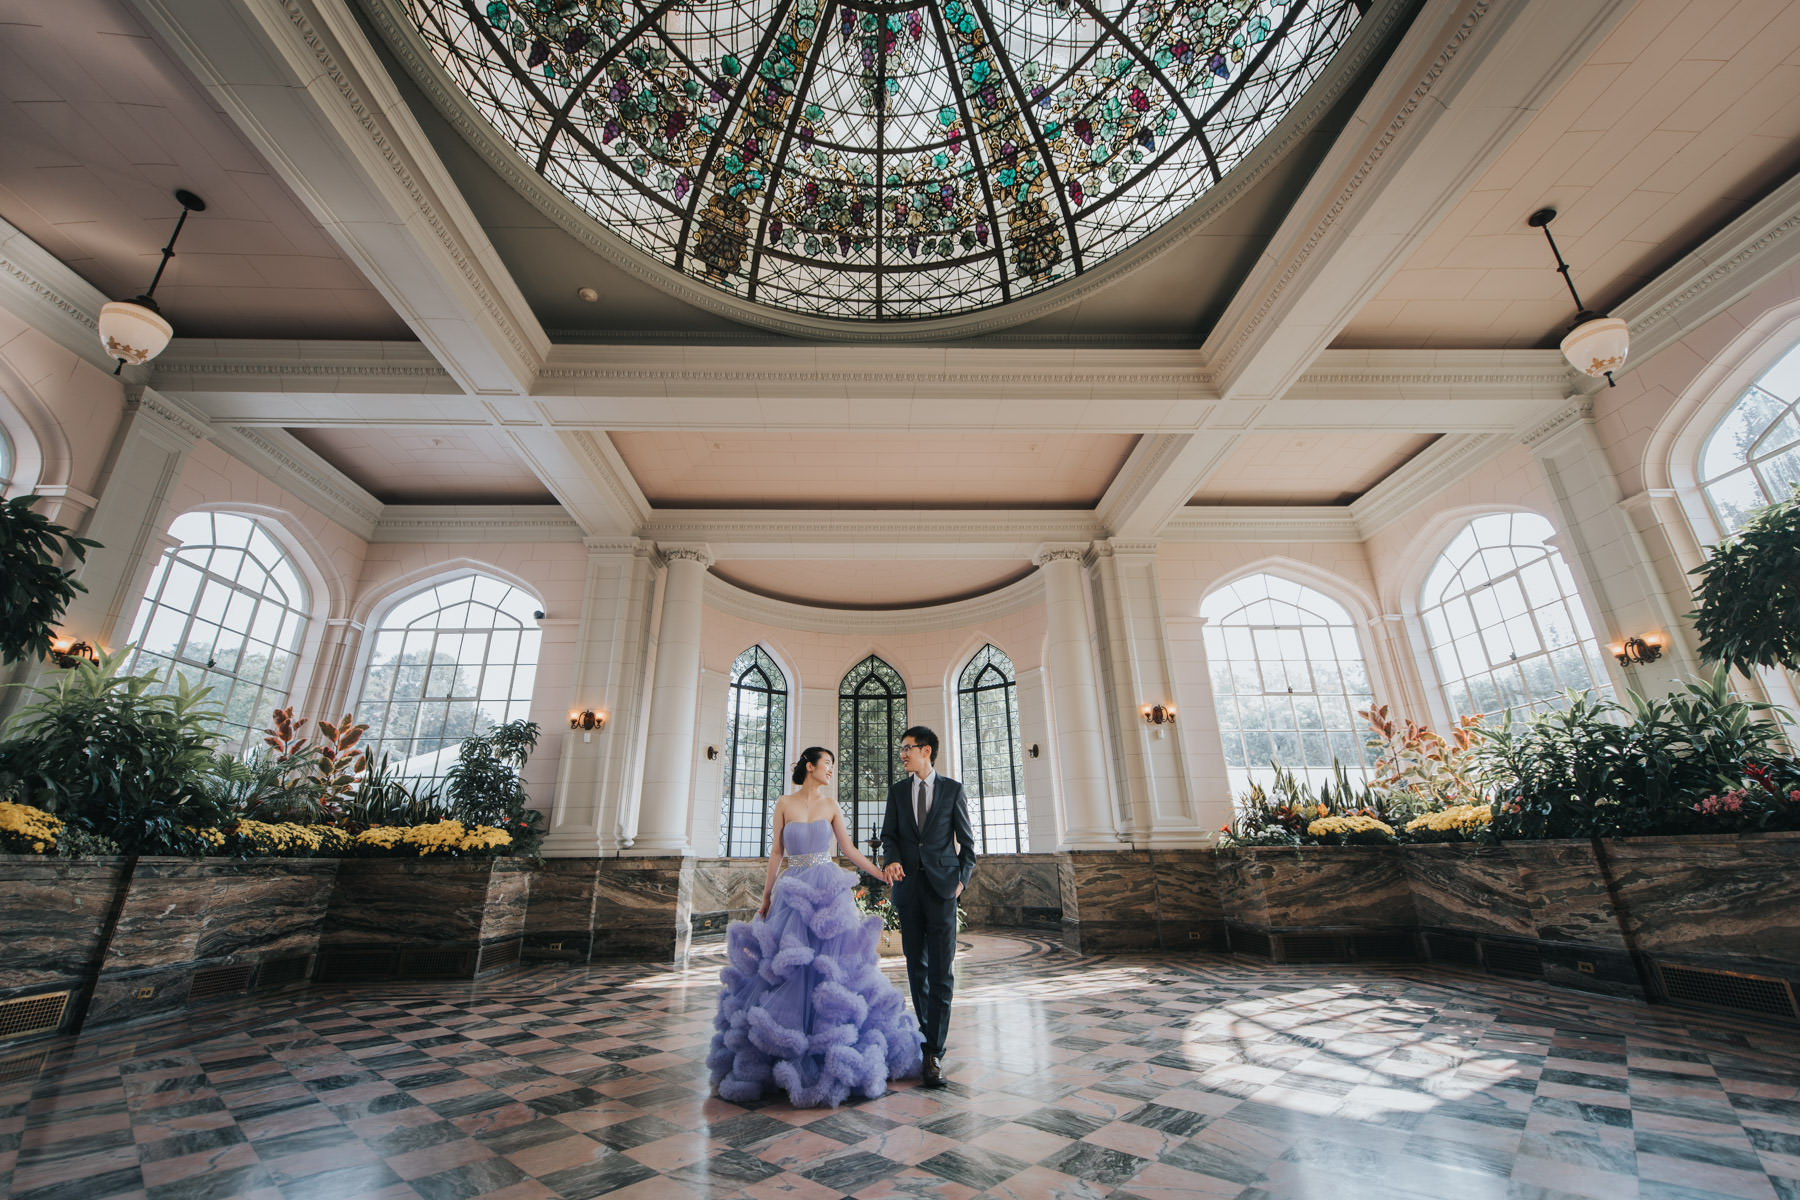 fairytale wedding photo at casa loma